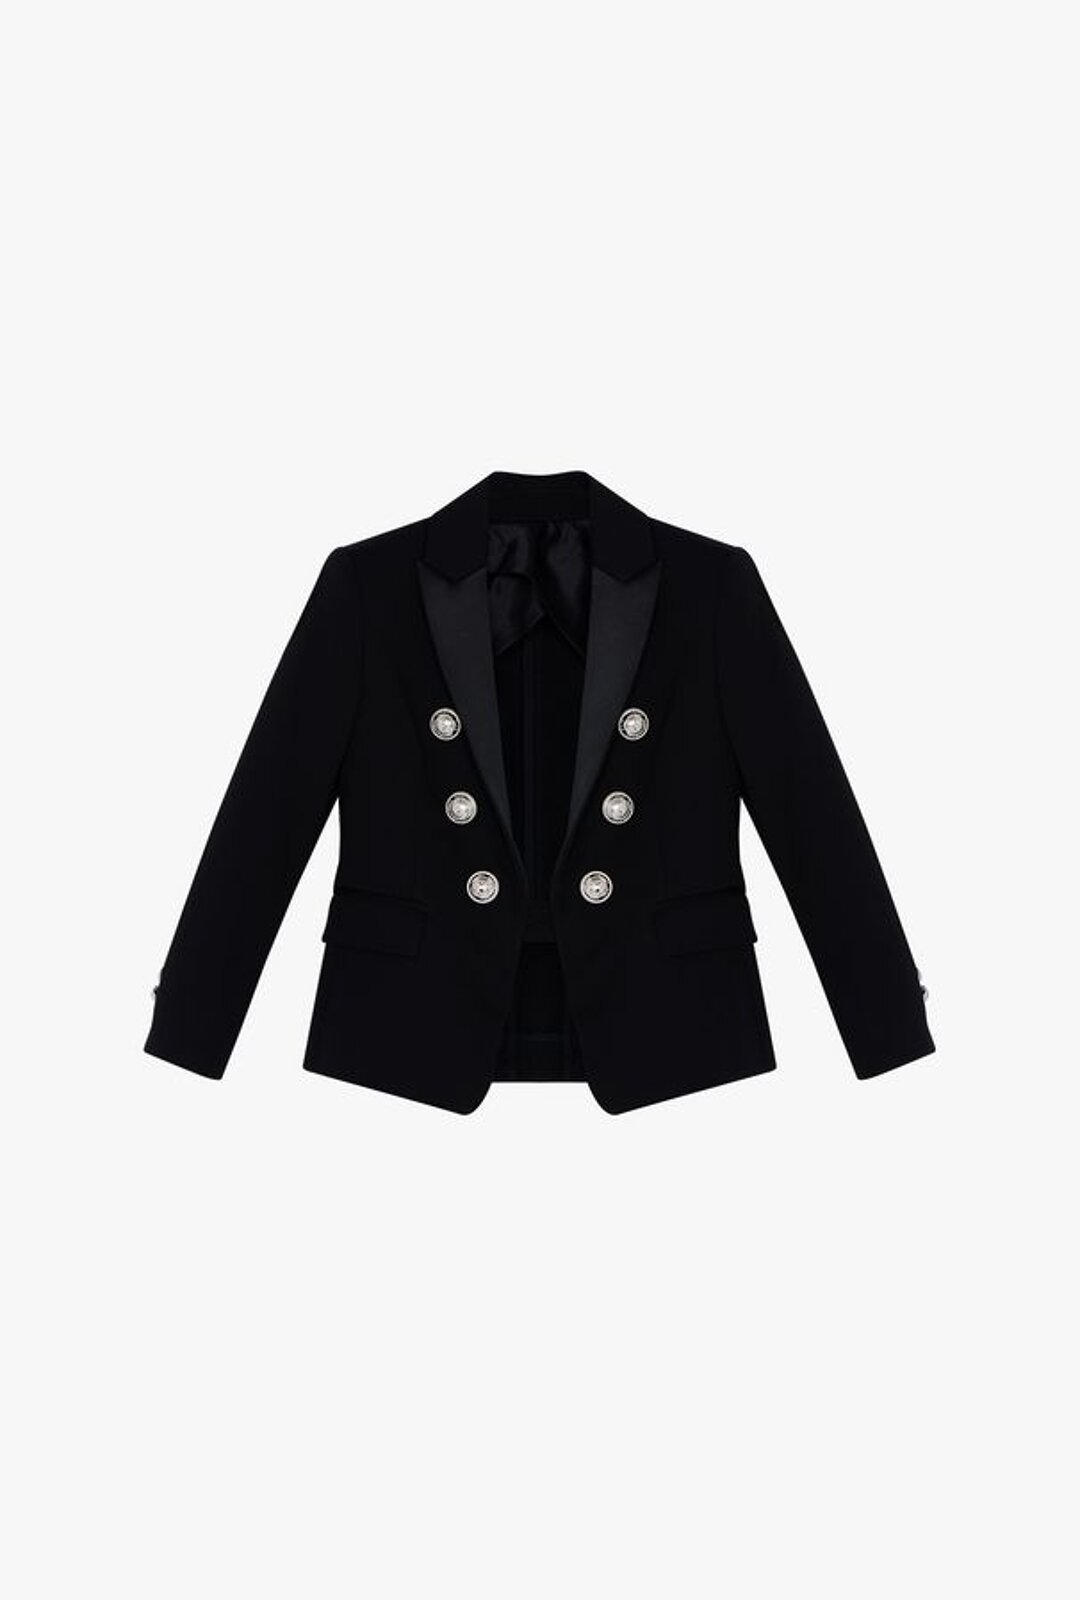 Double-Breasted Black Cotton Blazer With Silver Buttons - Balmain Junior